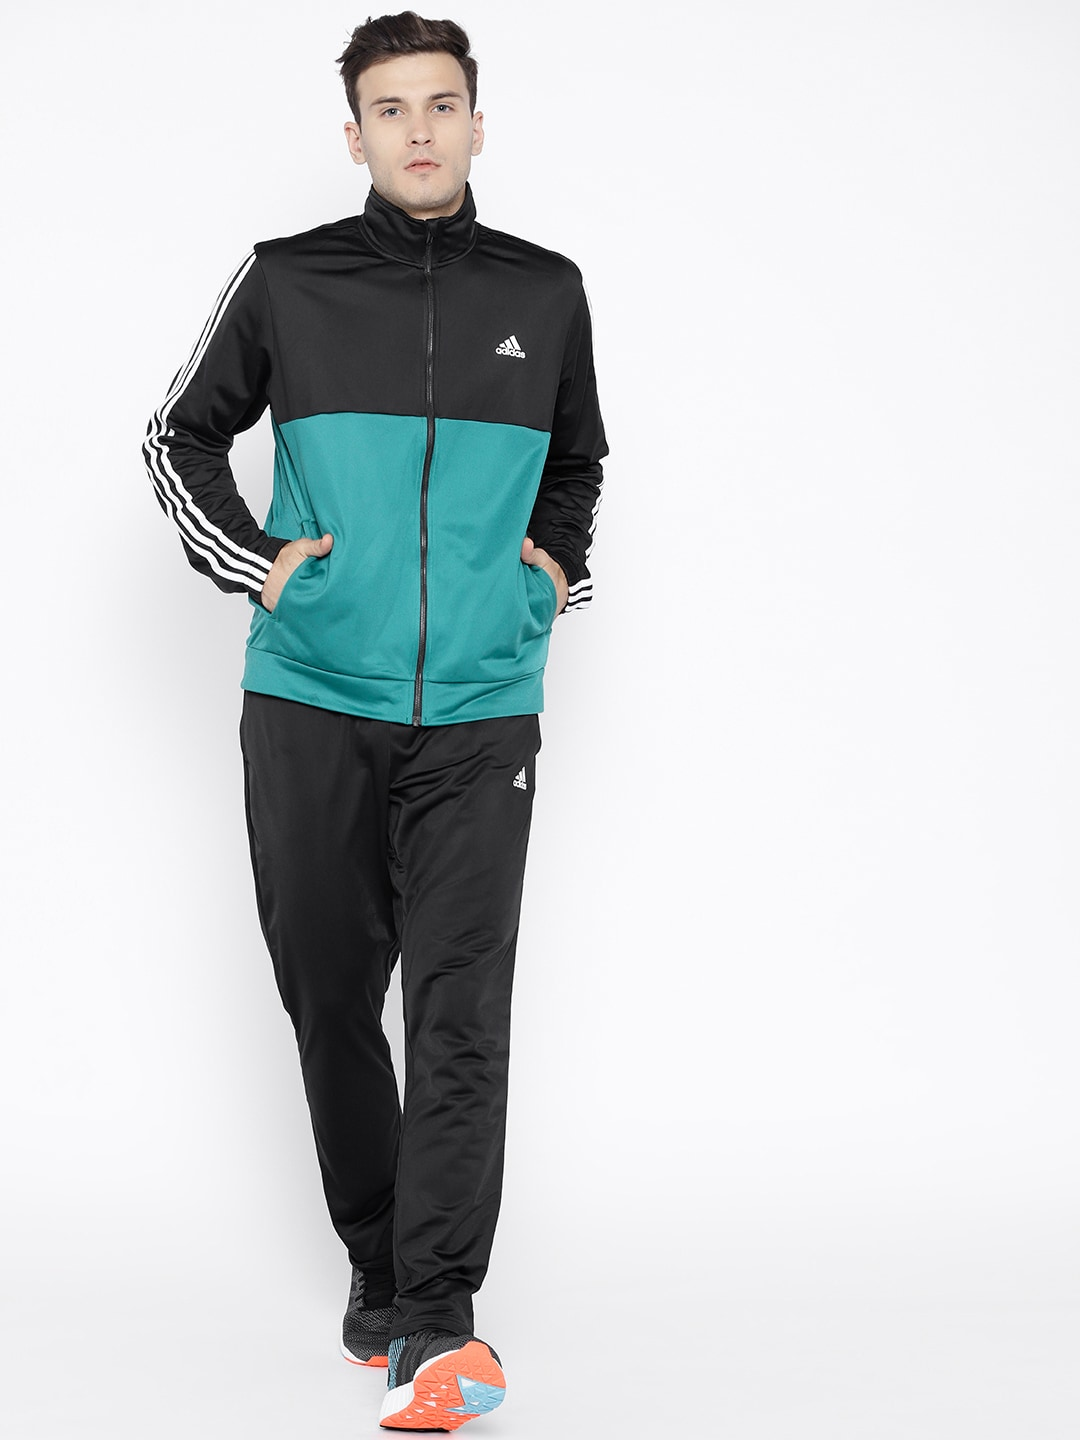 033fd8db30fd Adidas Tracksuits - Buy Adidas Tracksuits Online in India